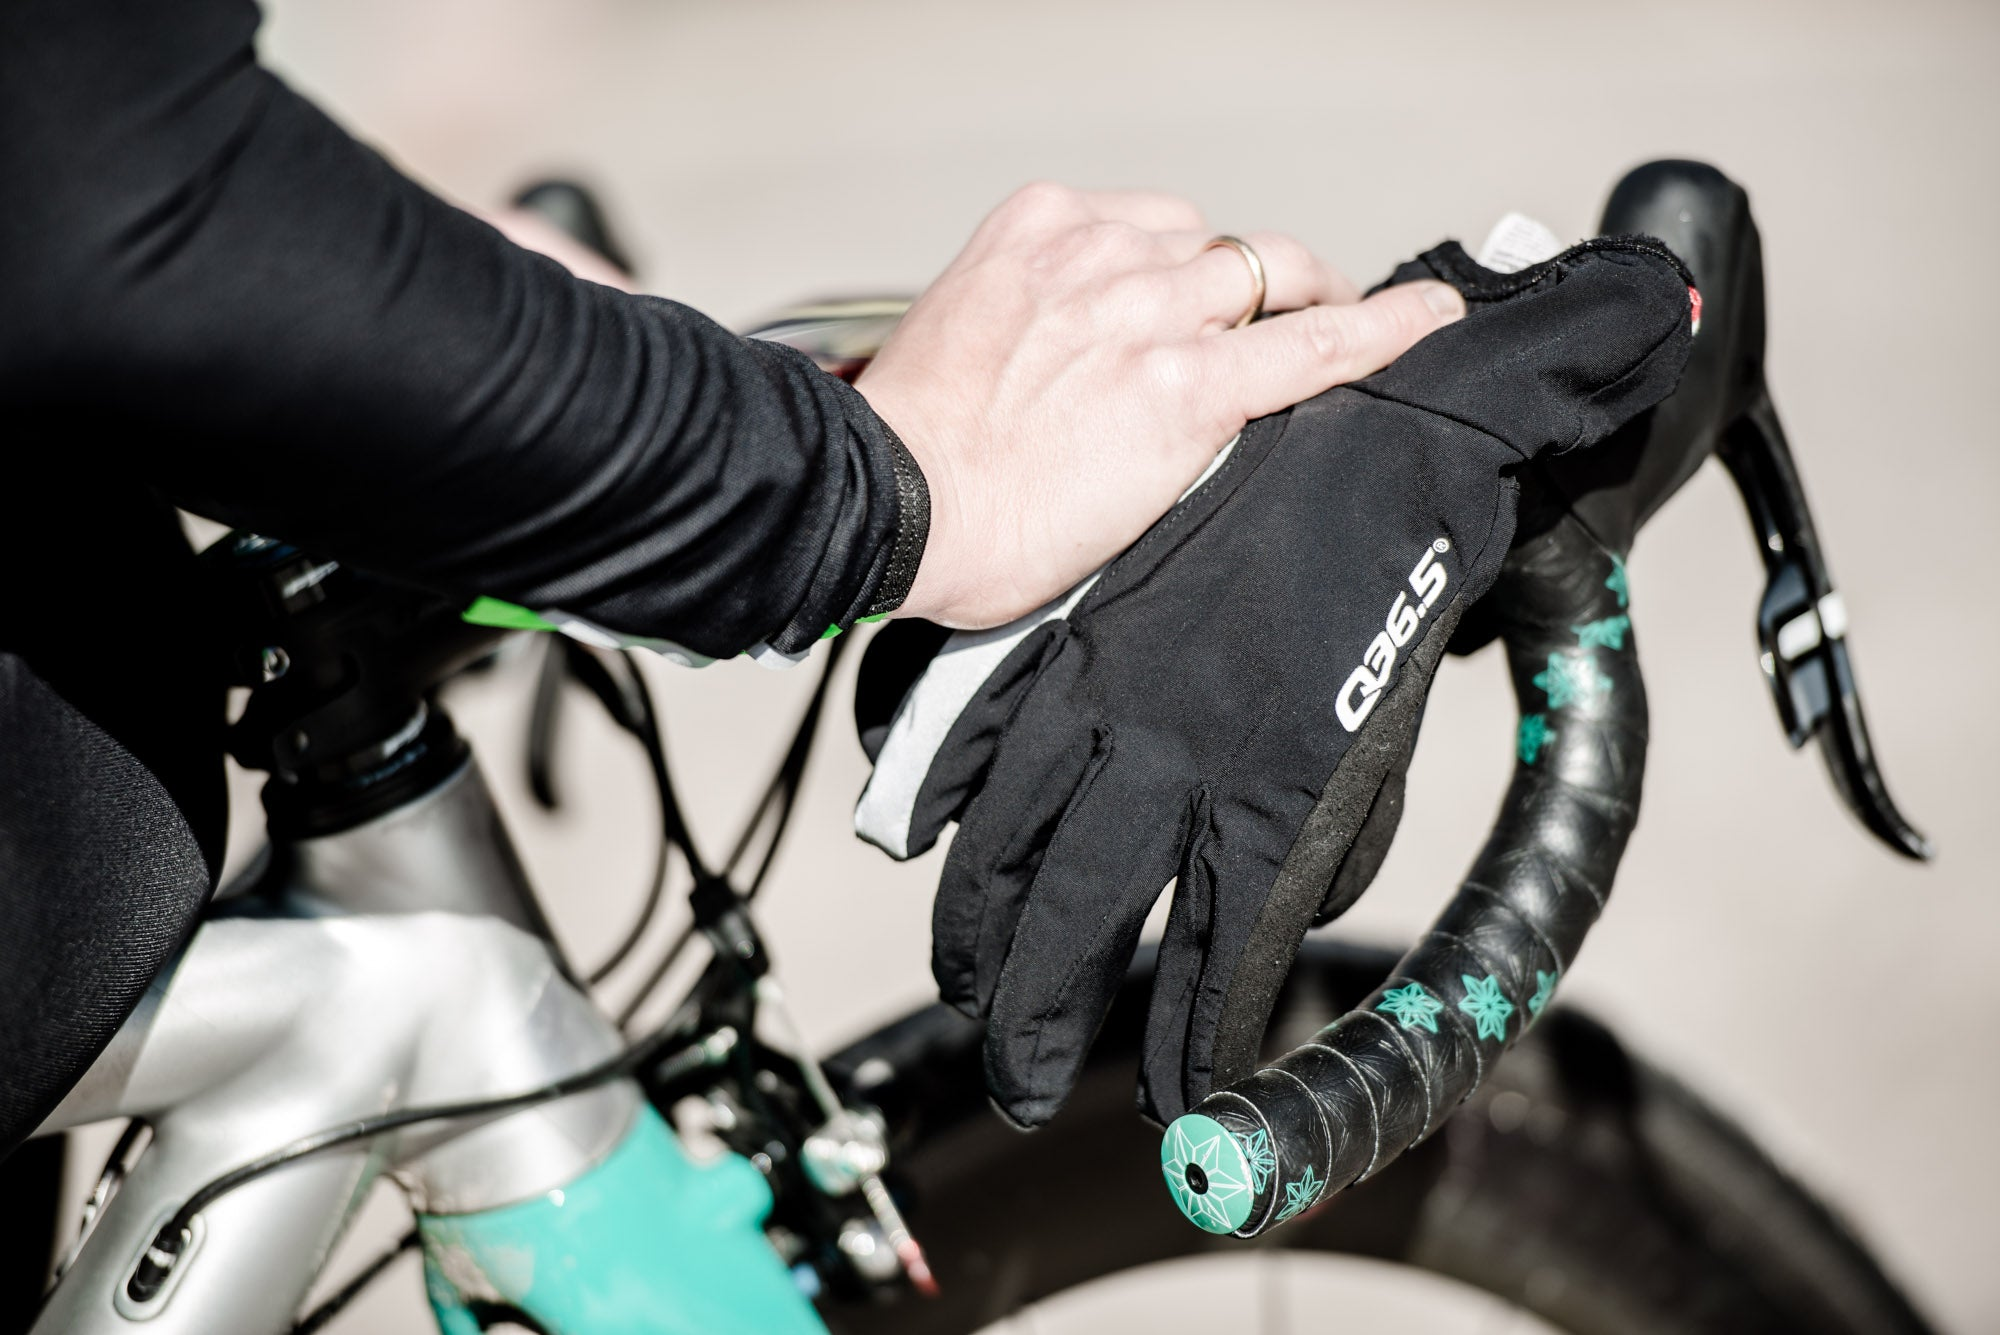 Q36.5 Be Love 0 Winter Cycling Gloves in Black for riding in cold weather conditions.